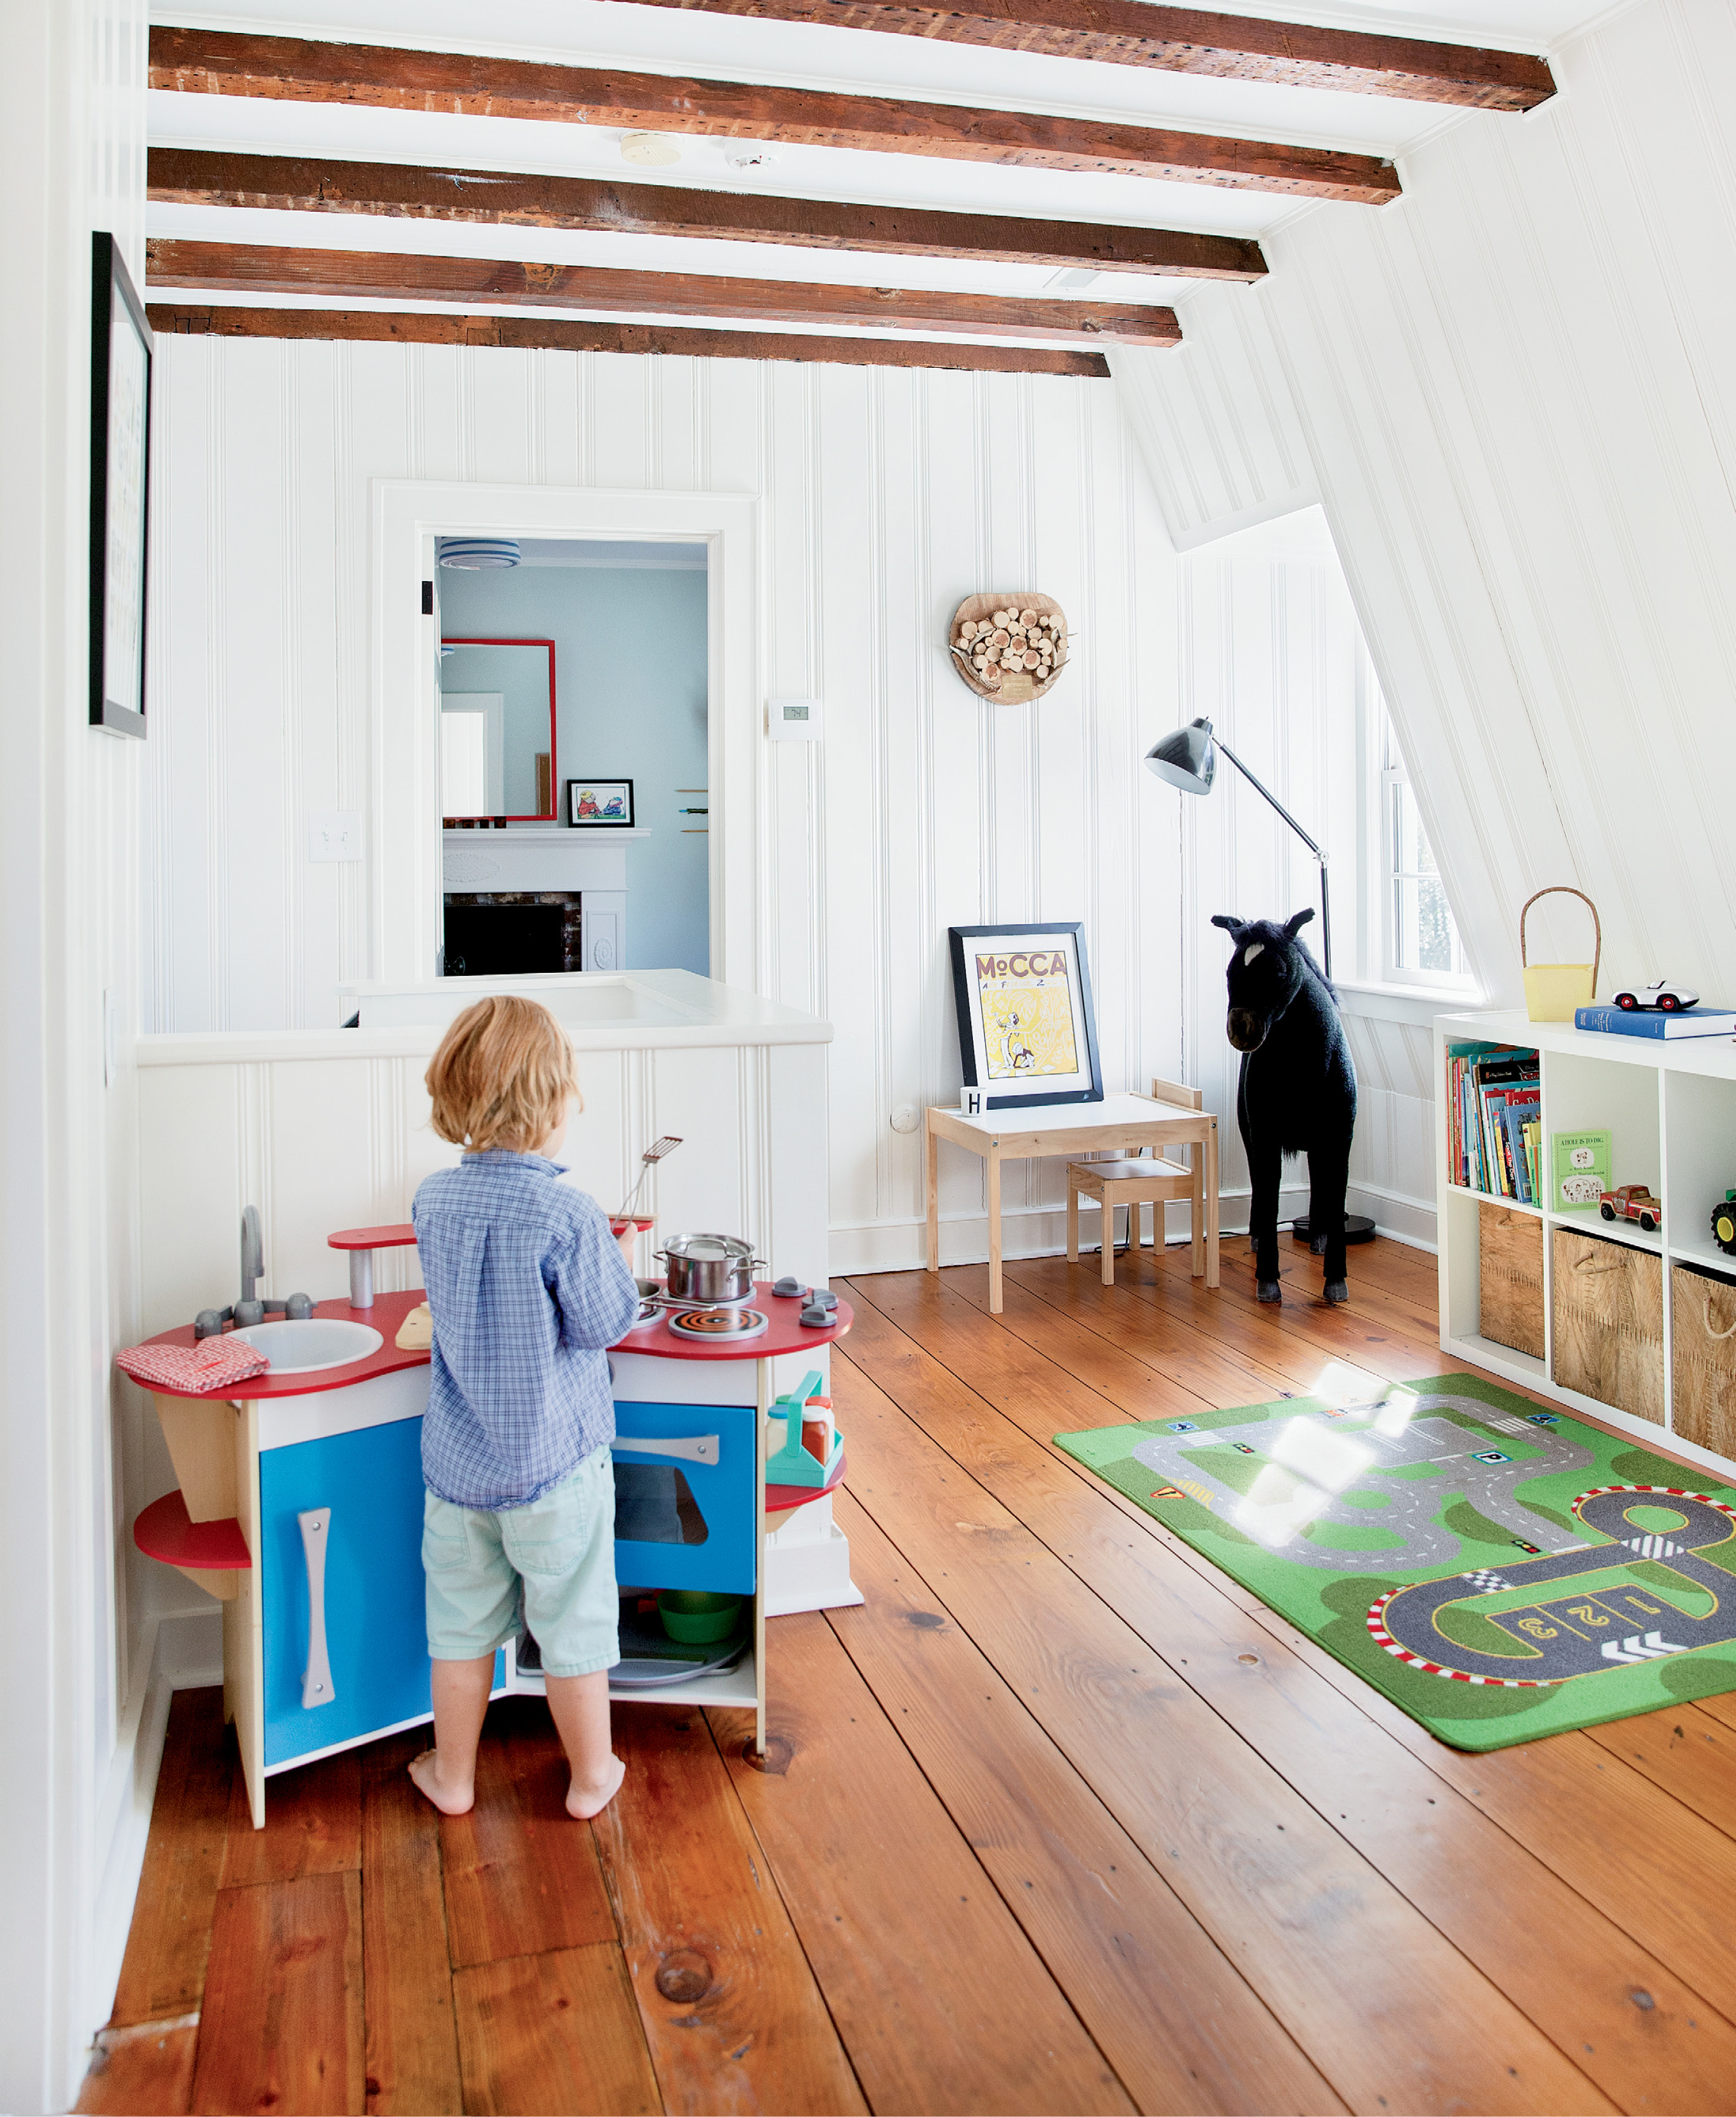 Henry whips up some pretend grub in his playroom, which retains its 18th-century footprint, as does his adjoining bedroom.